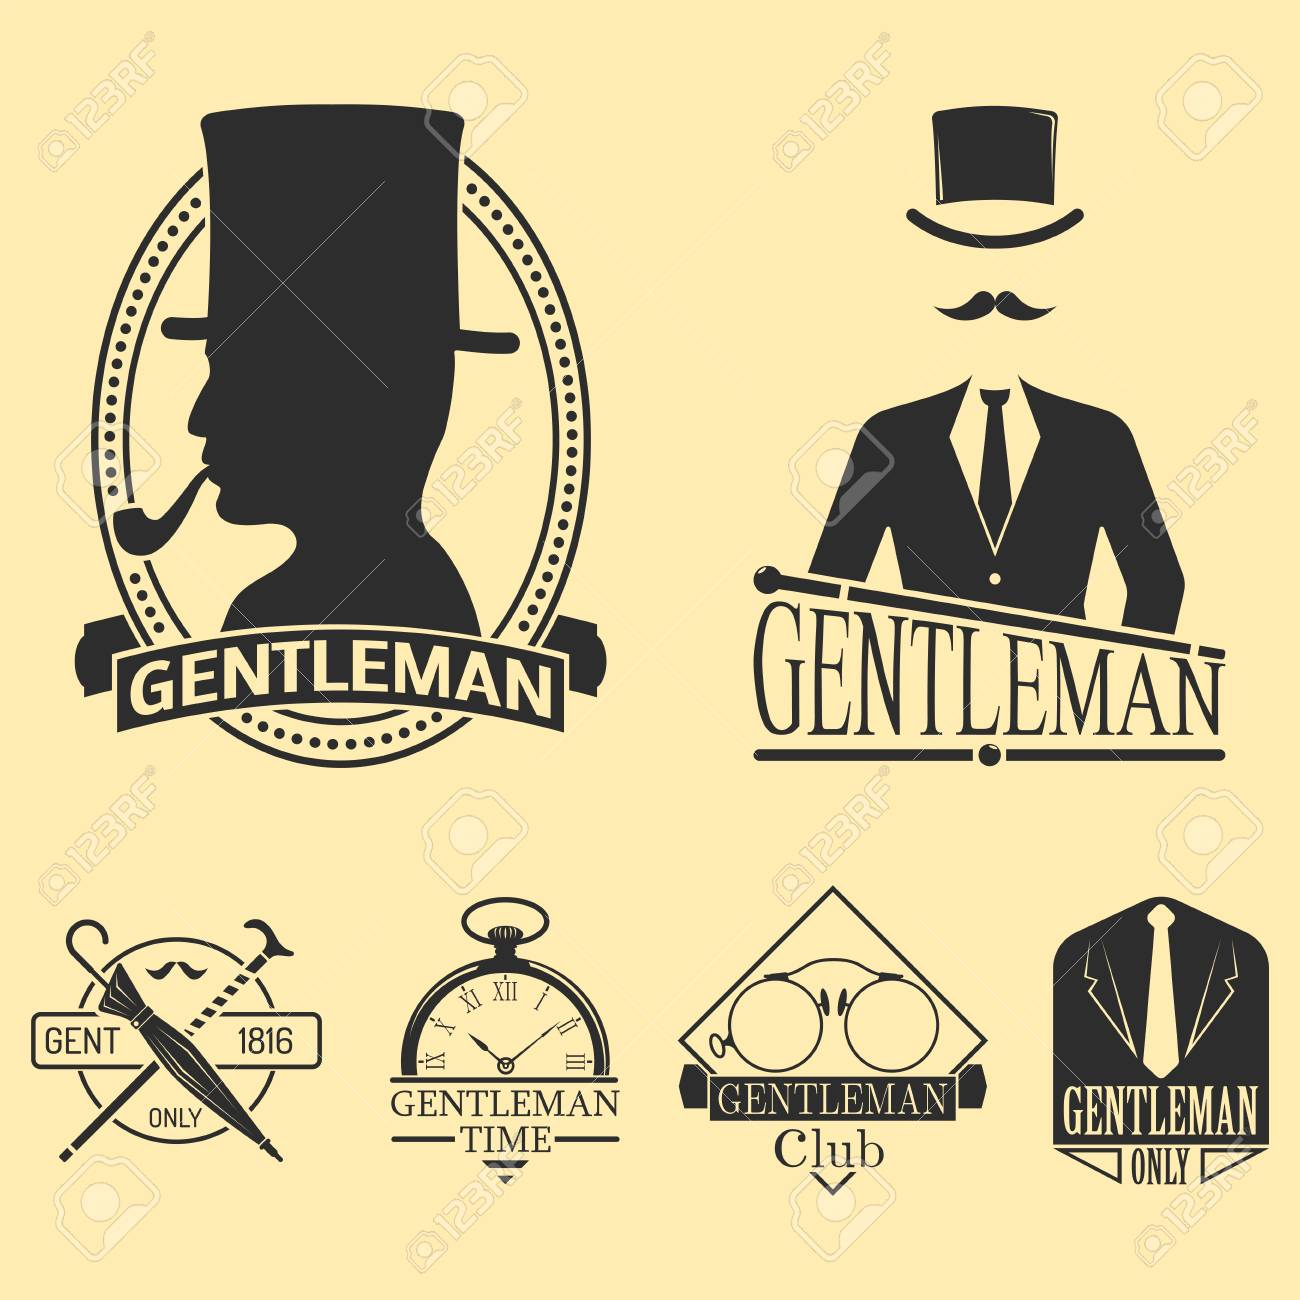 93f50ff0954a2b Vector - Vintage style design hipster gentleman vector illustration badge  black silhouette element.